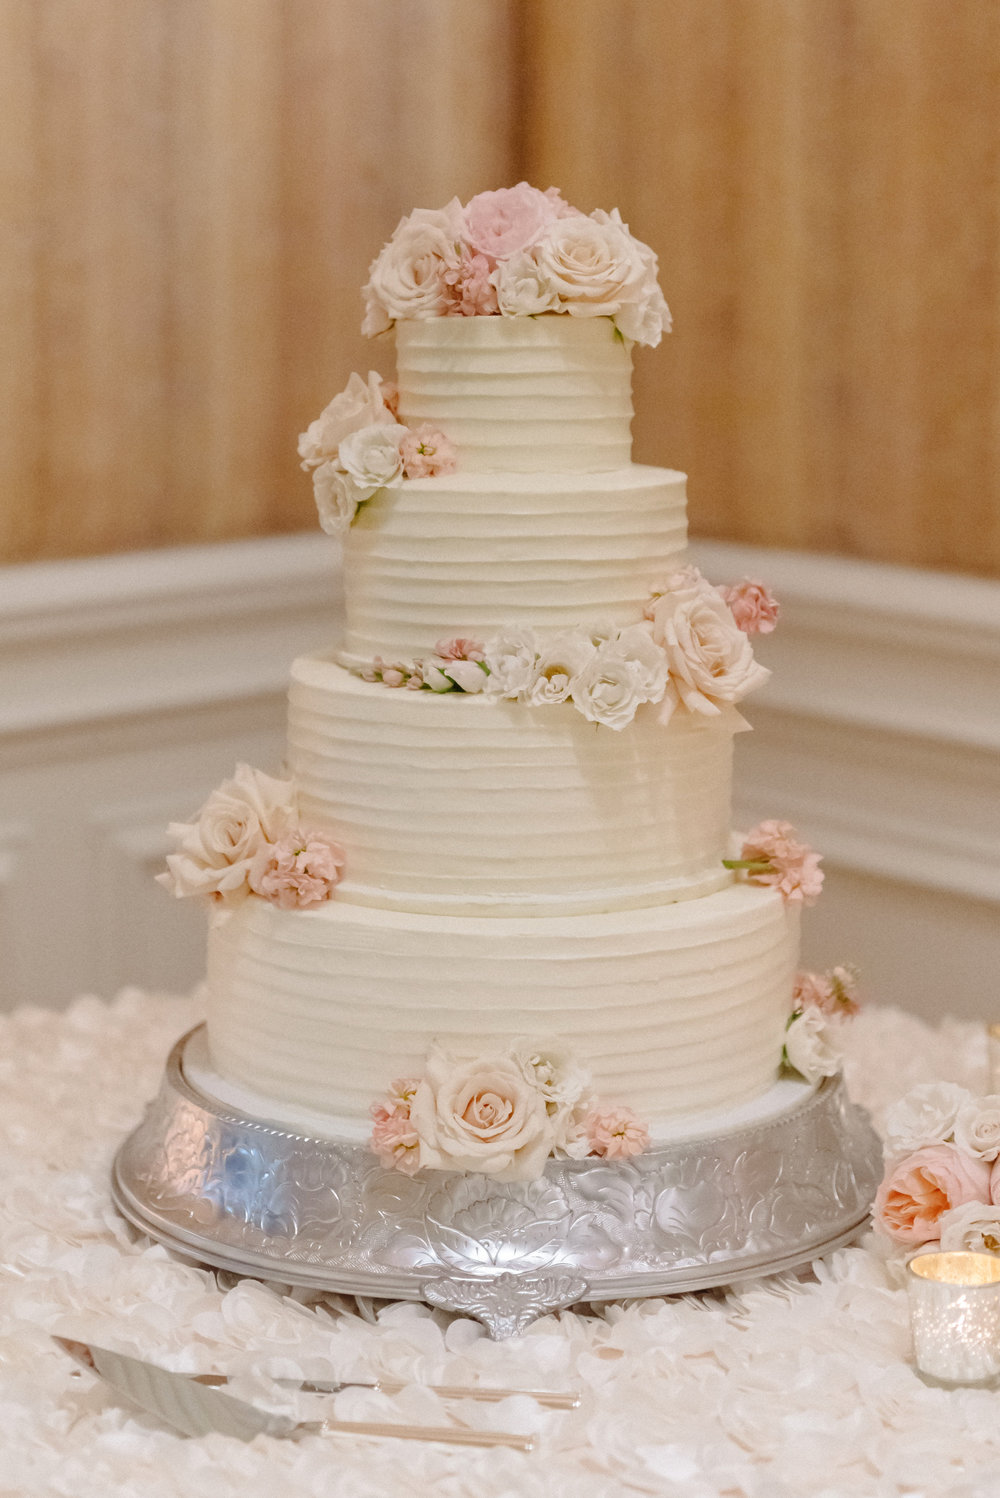 pink florals on white cake